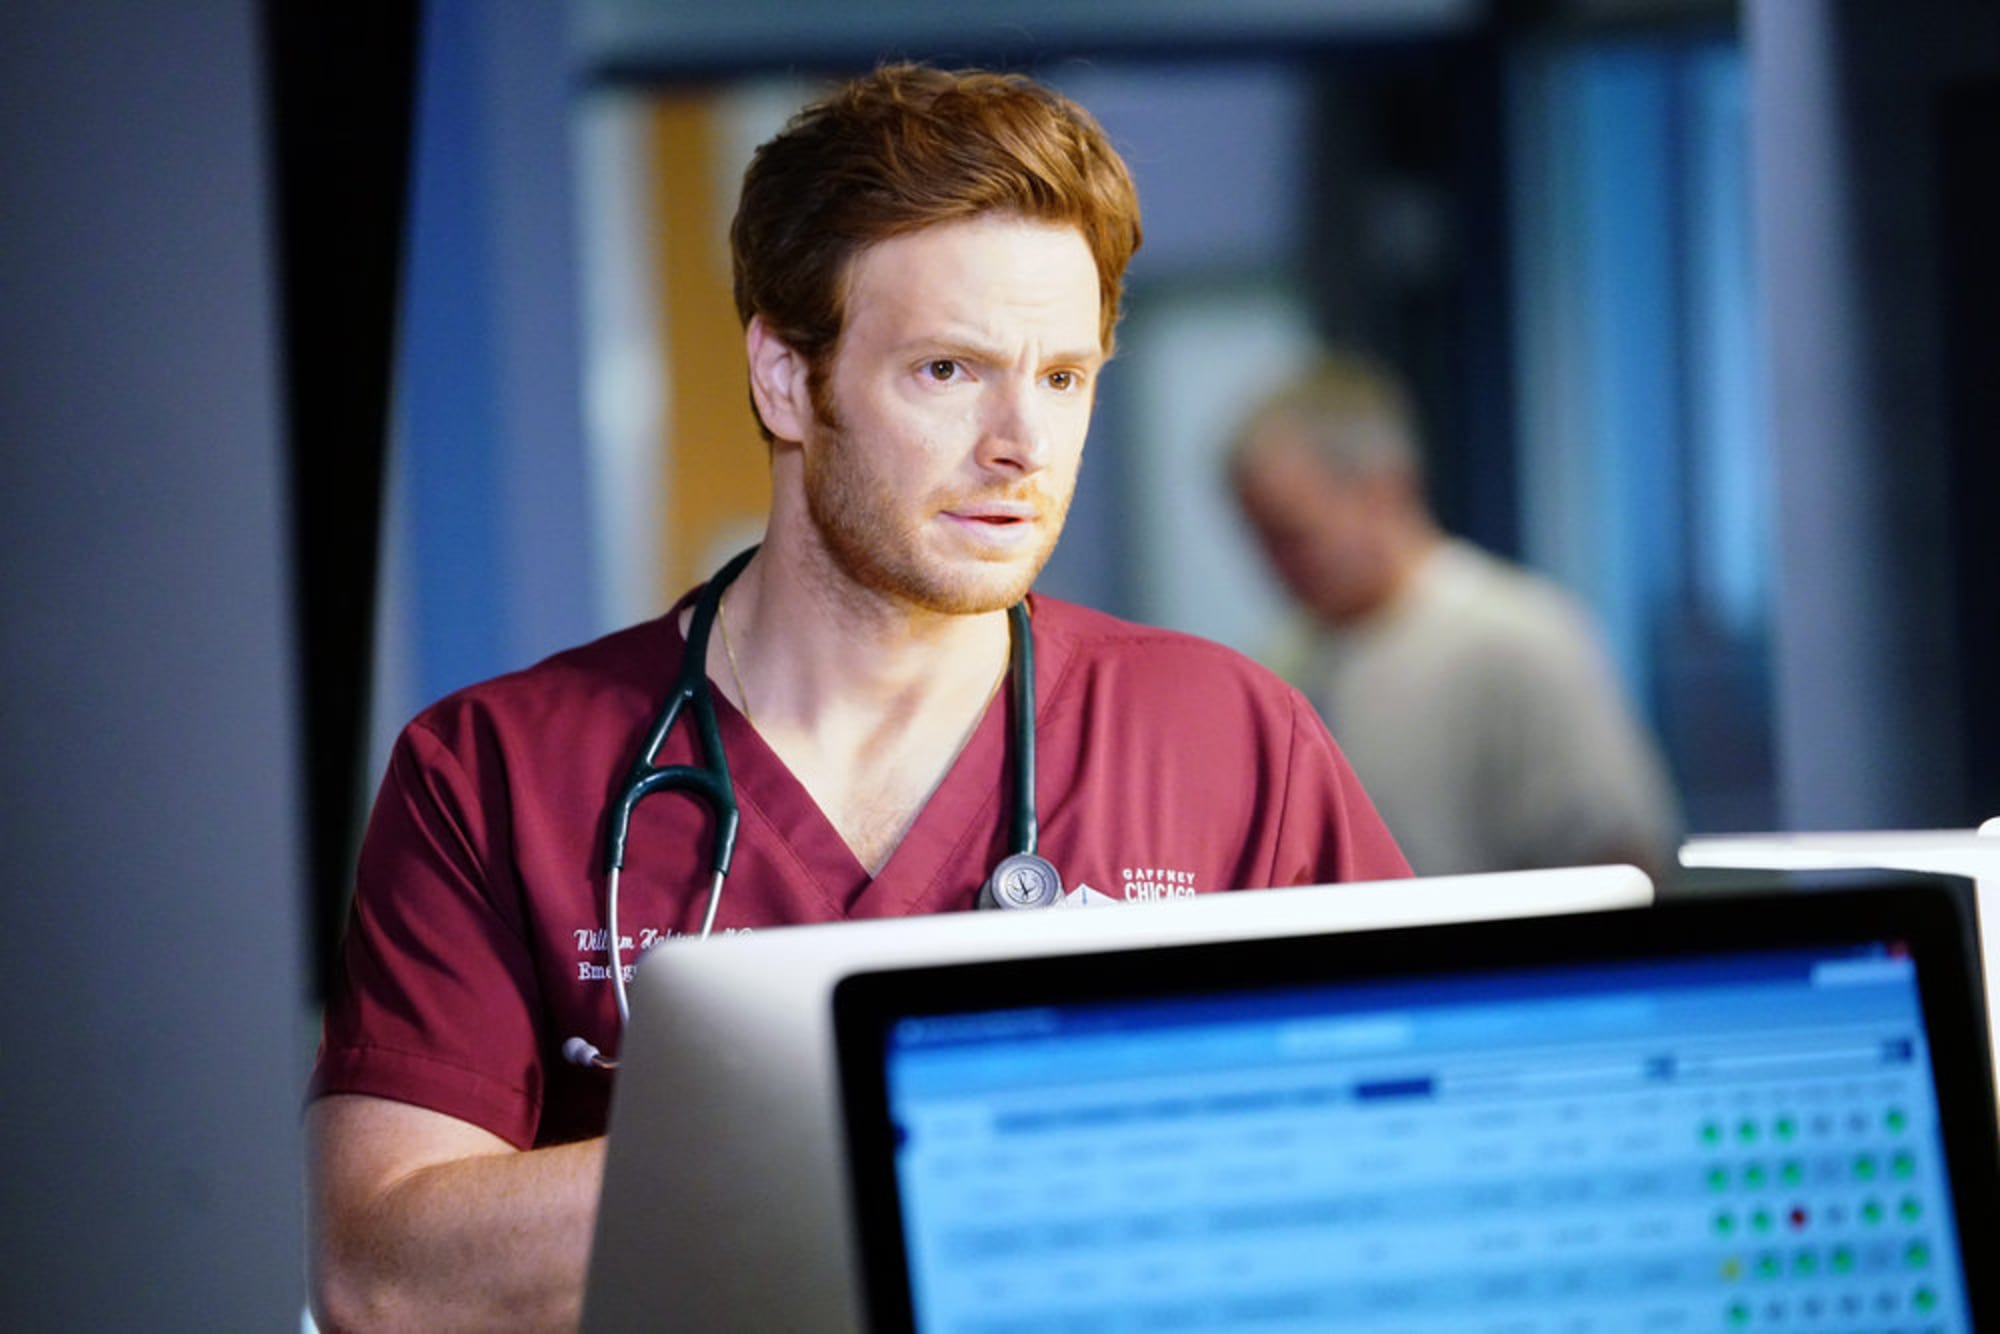 Chicago Med season 6 character preview: Will Halstead